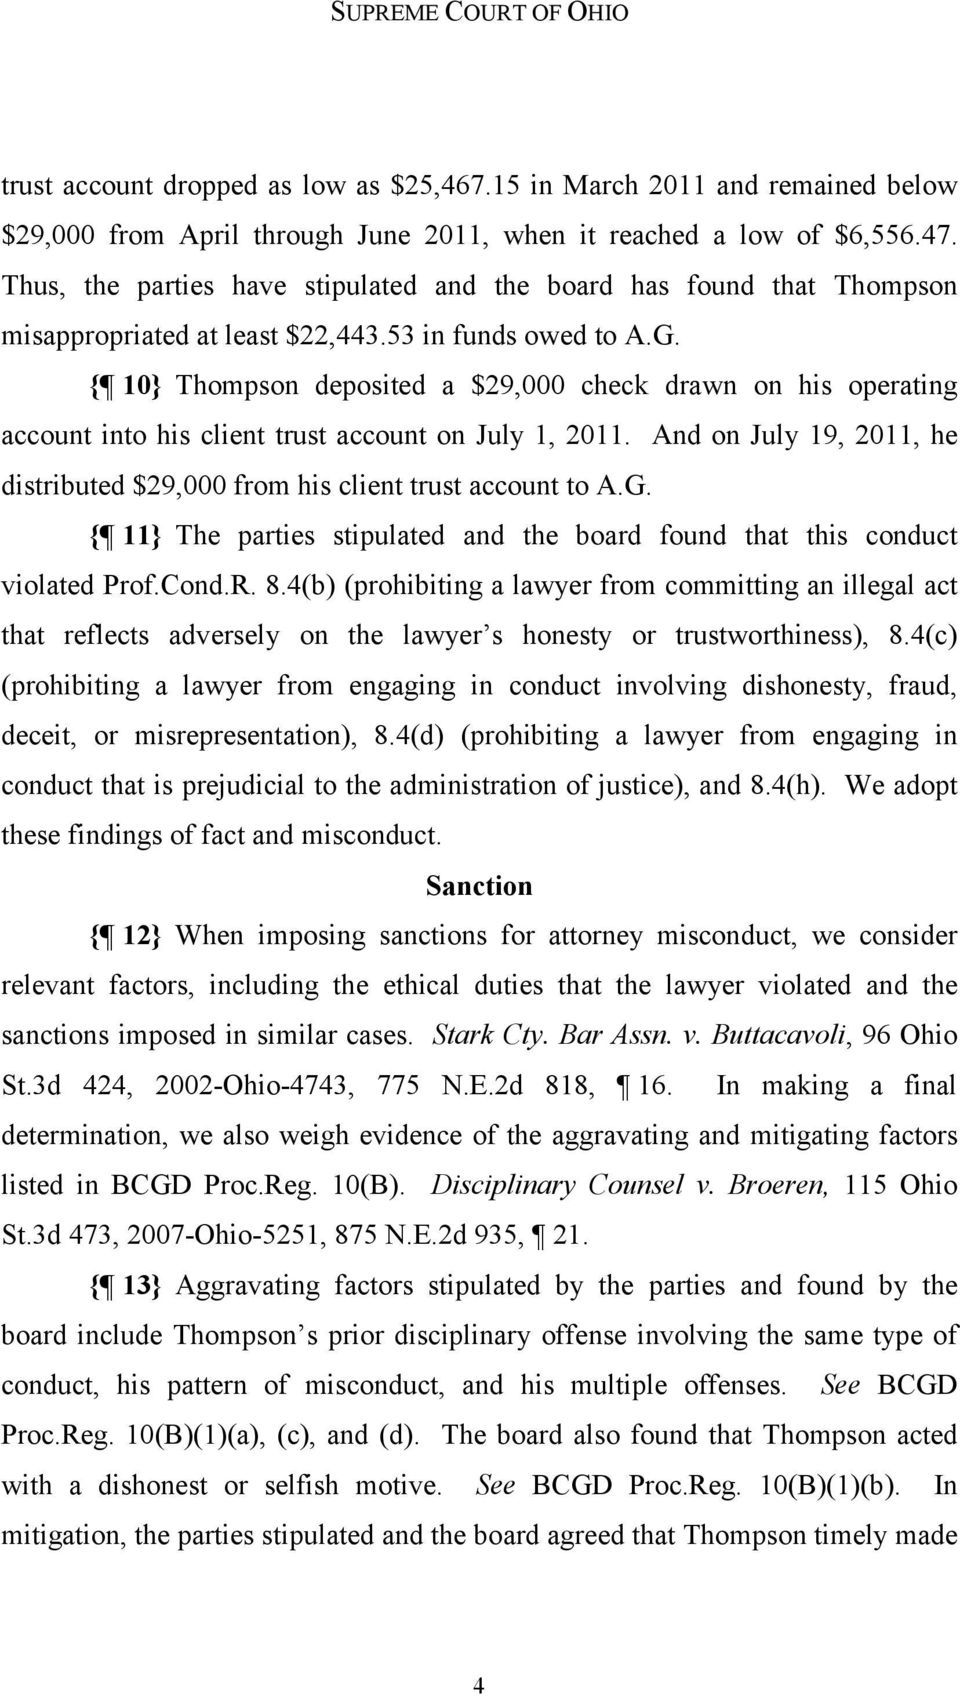 { 10} Thompson deposited a $29,000 check drawn on his operating account into his client trust account on July 1, 2011. And on July 19, 2011, he distributed $29,000 from his client trust account to A.